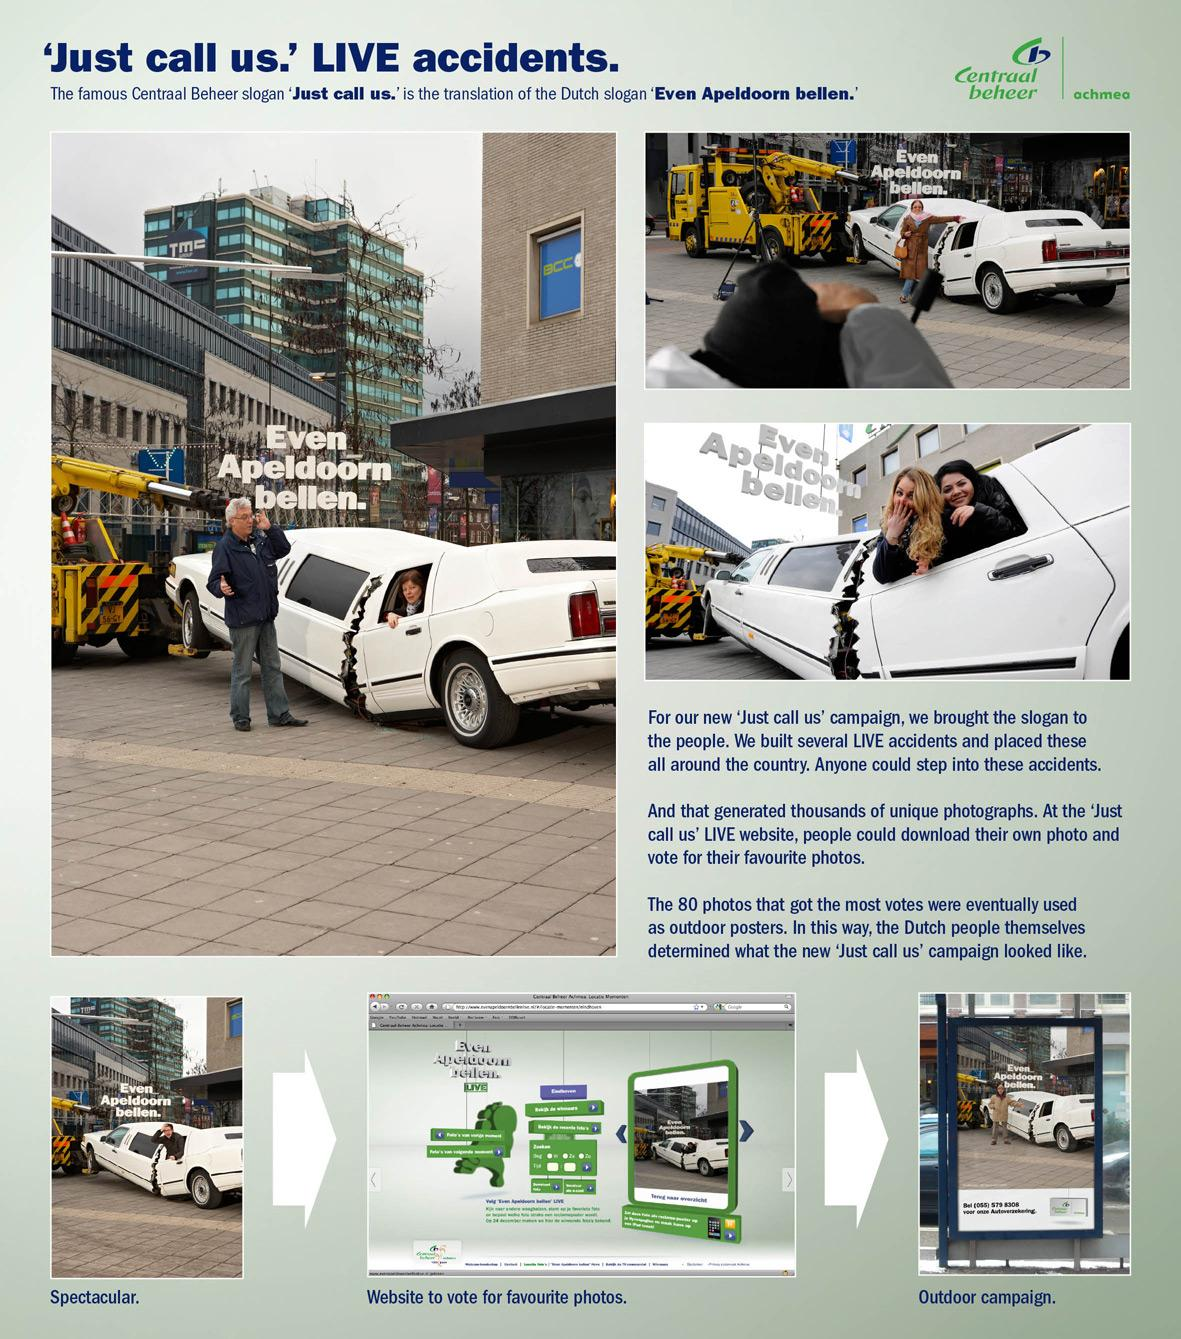 Centraal Beheer Ambient Ad -  Just call us live accidents, 5